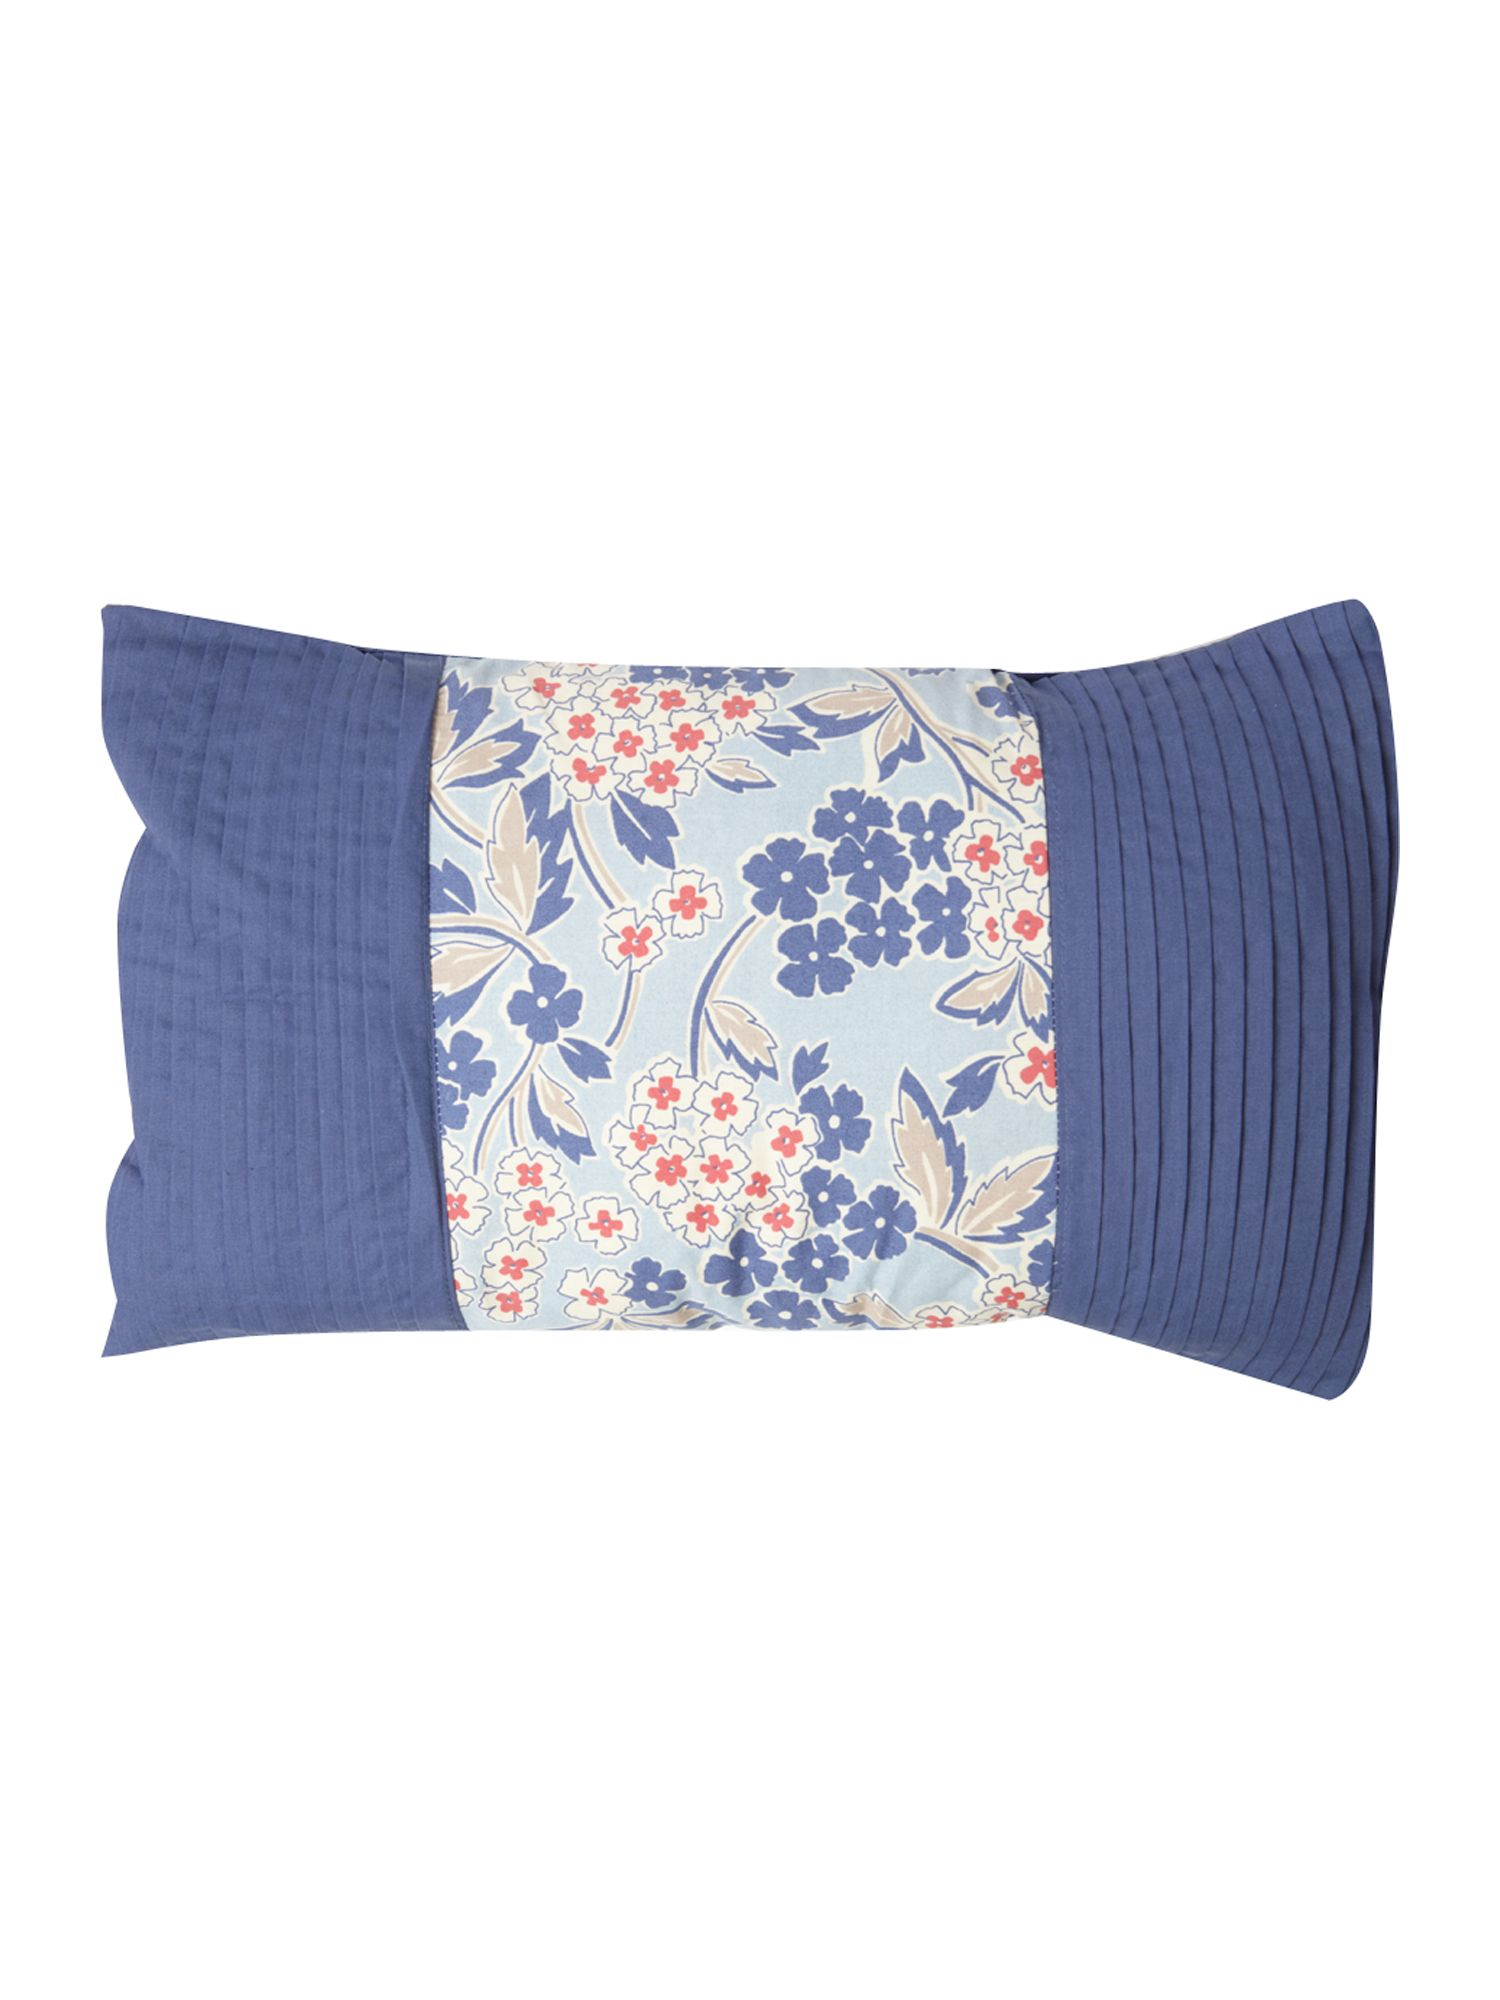 Miranda boudoir cushion